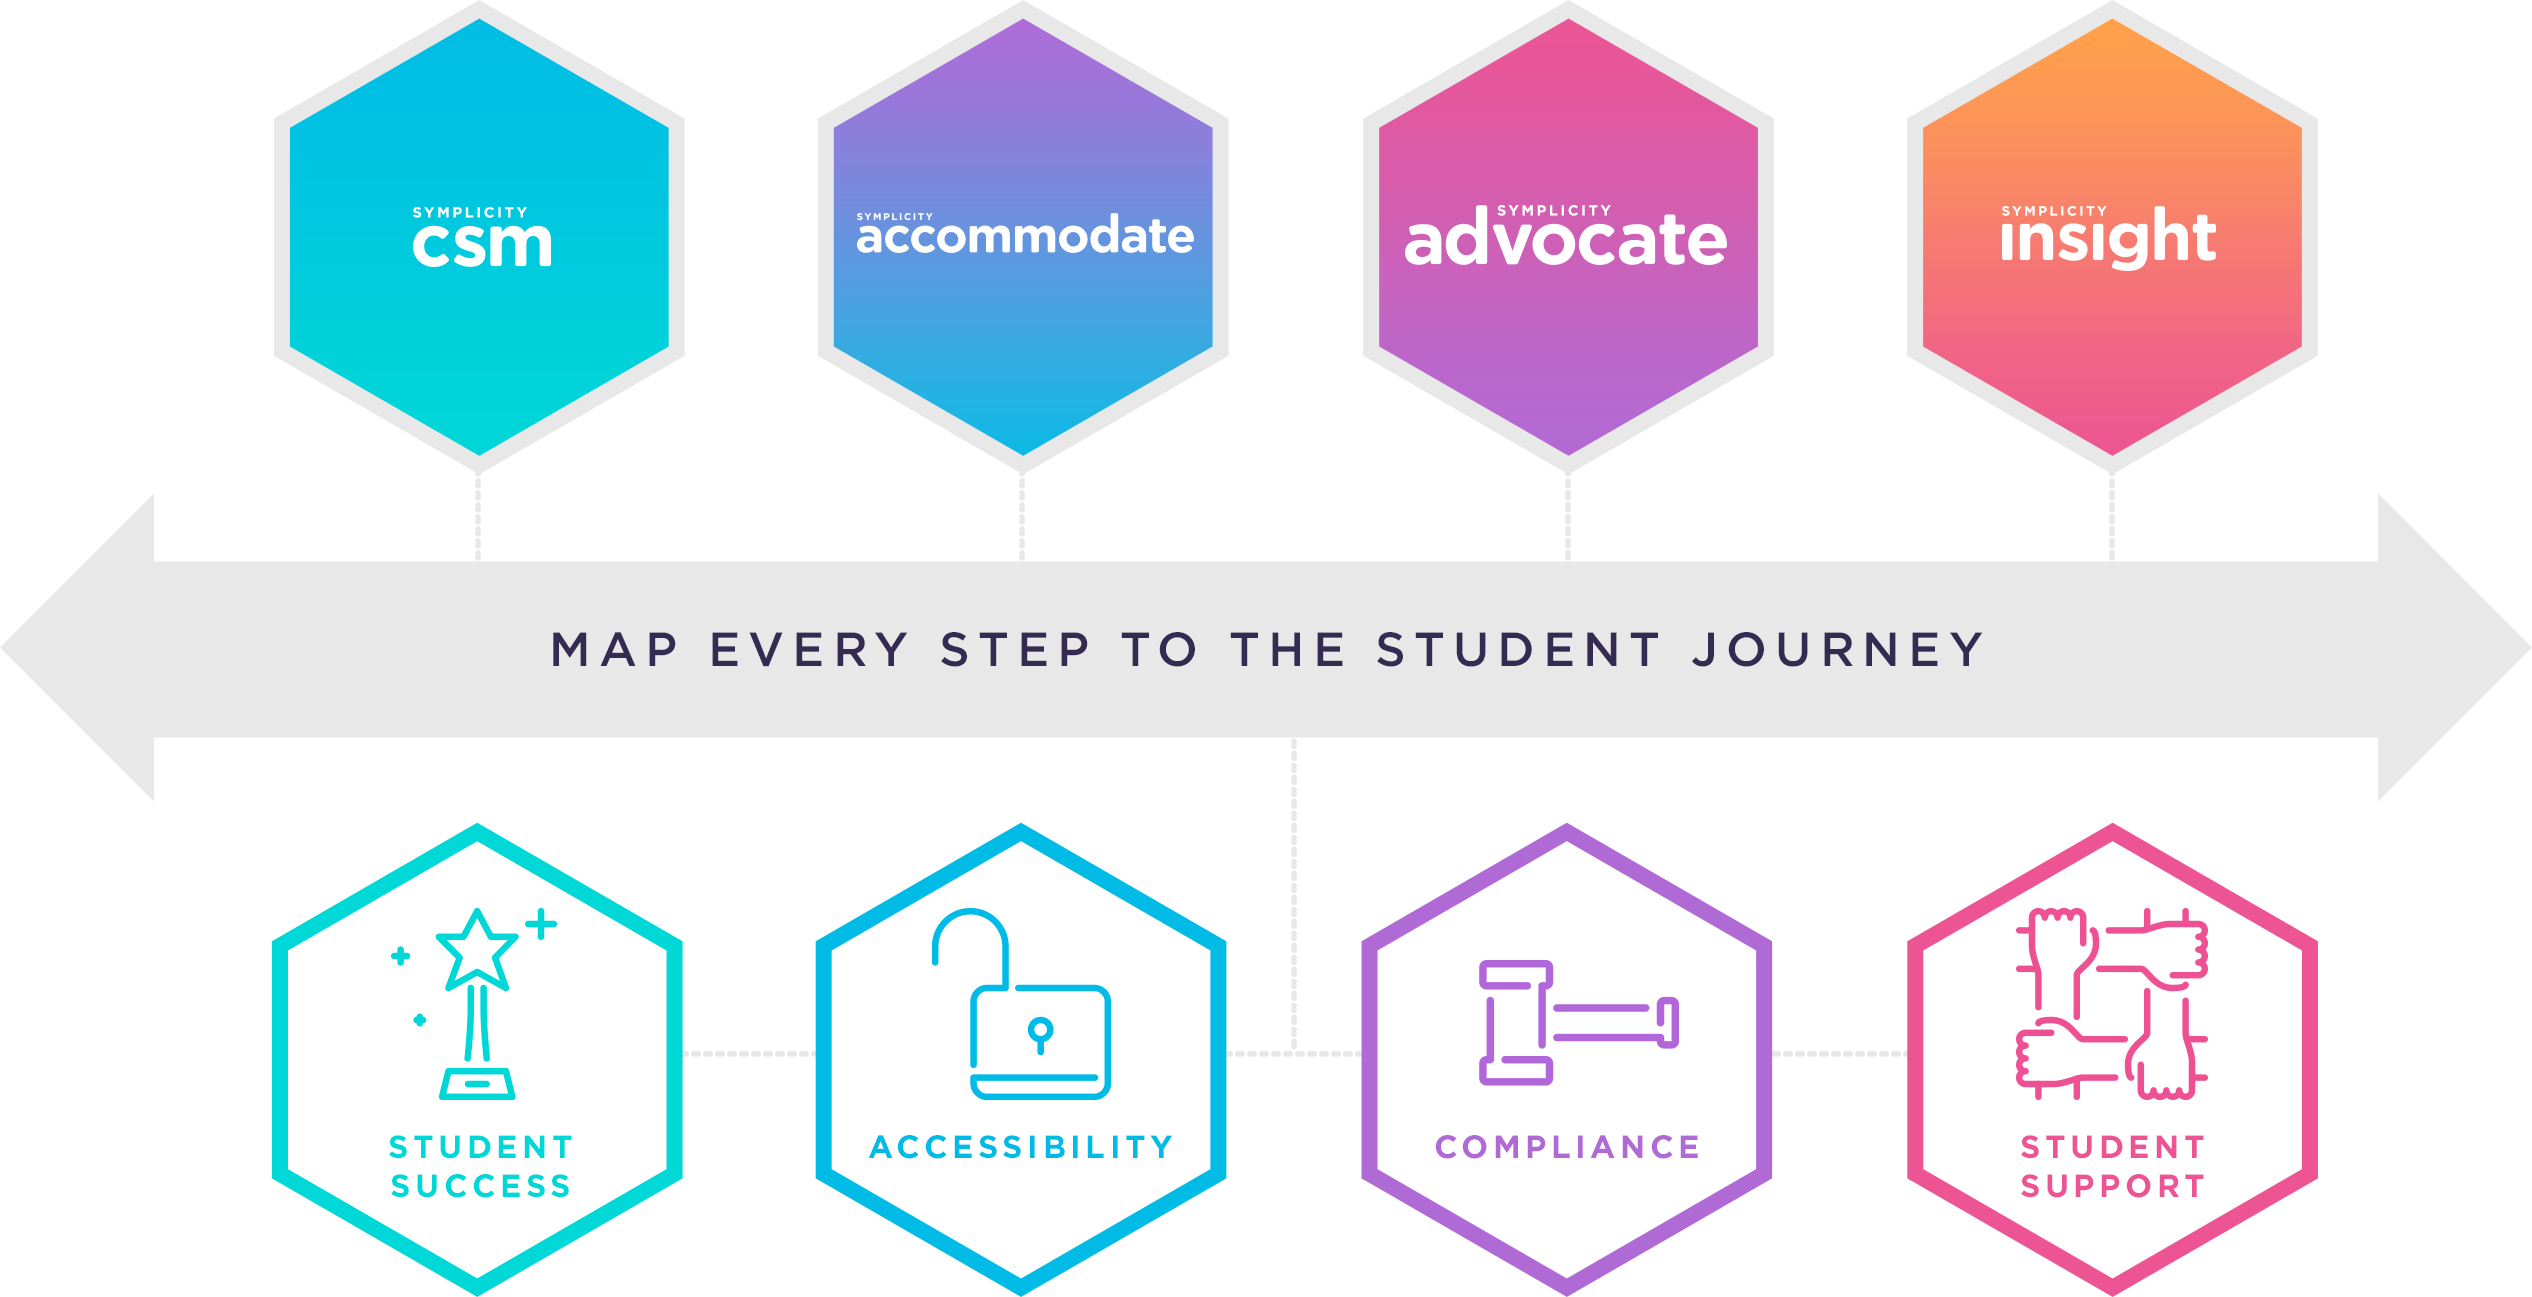 Map Every Step To The Student Journey